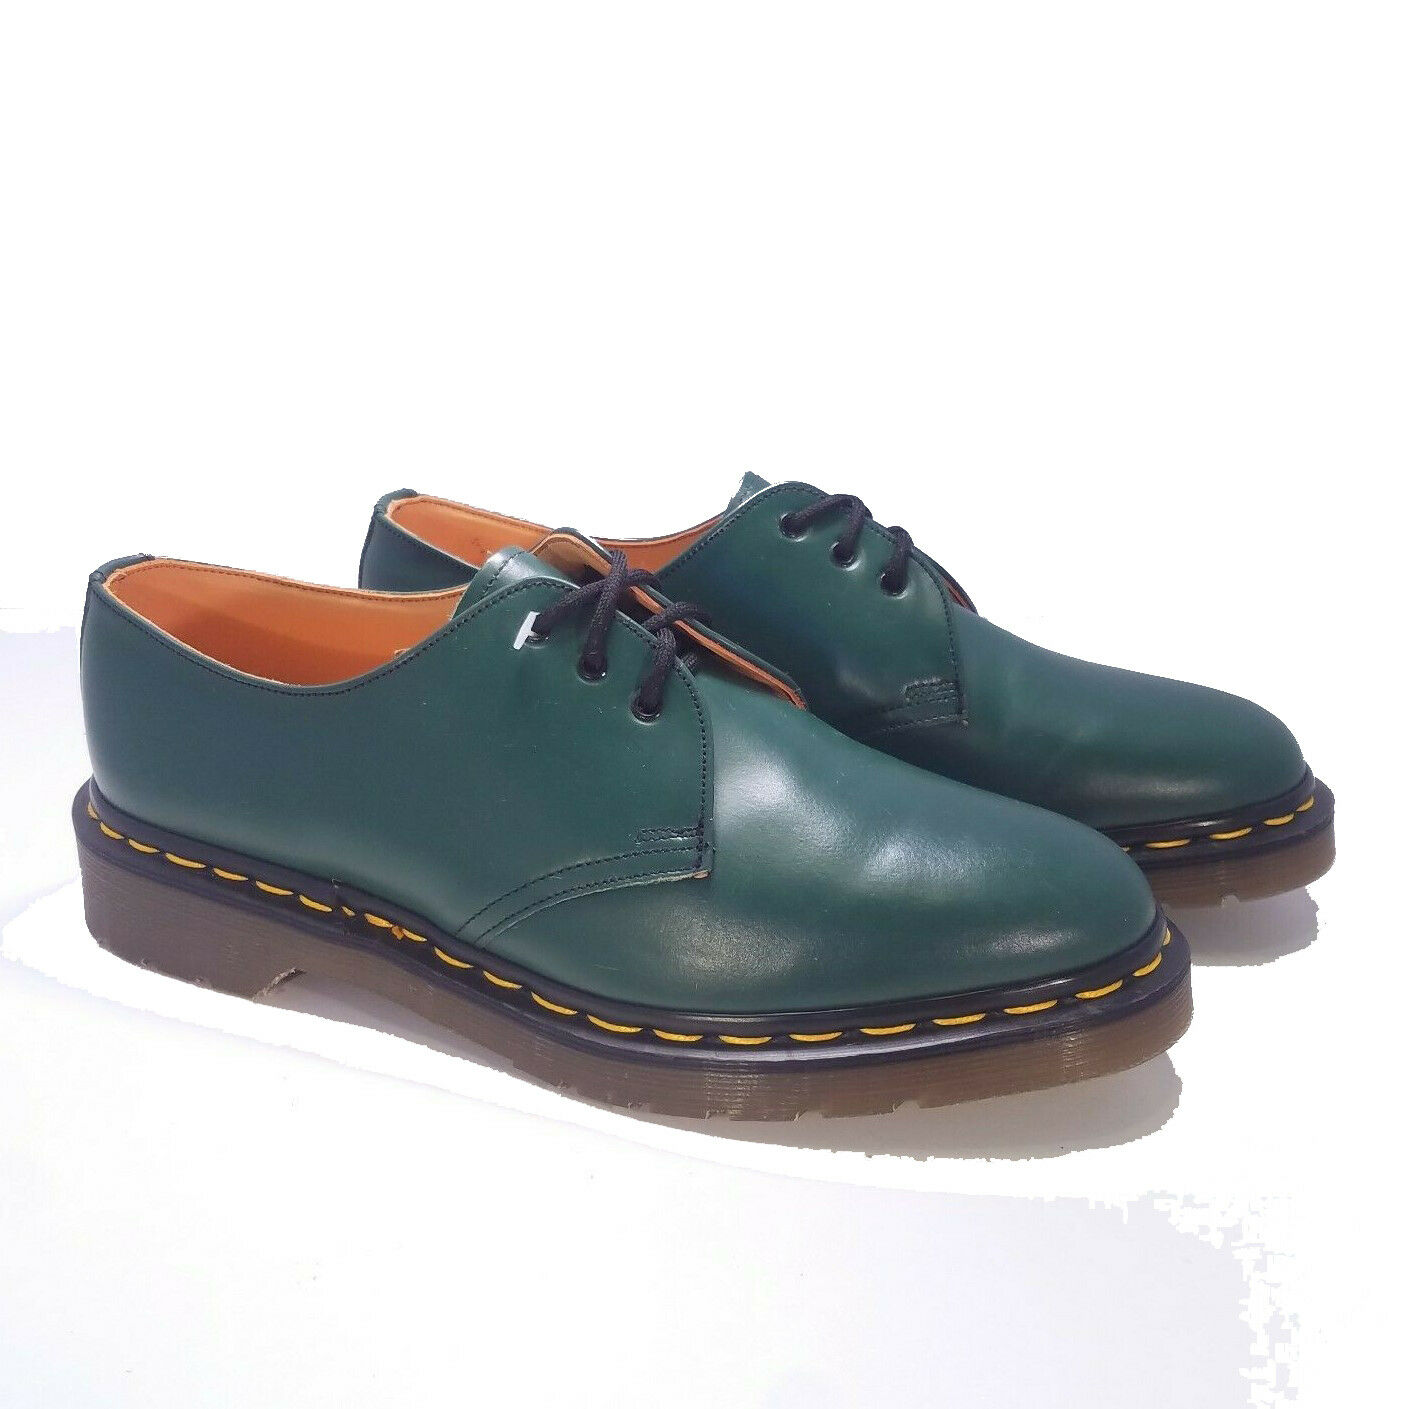 Dr. Martens Doc England MIE Rare Vintage Green Leather 1461 shoes UK3 US5